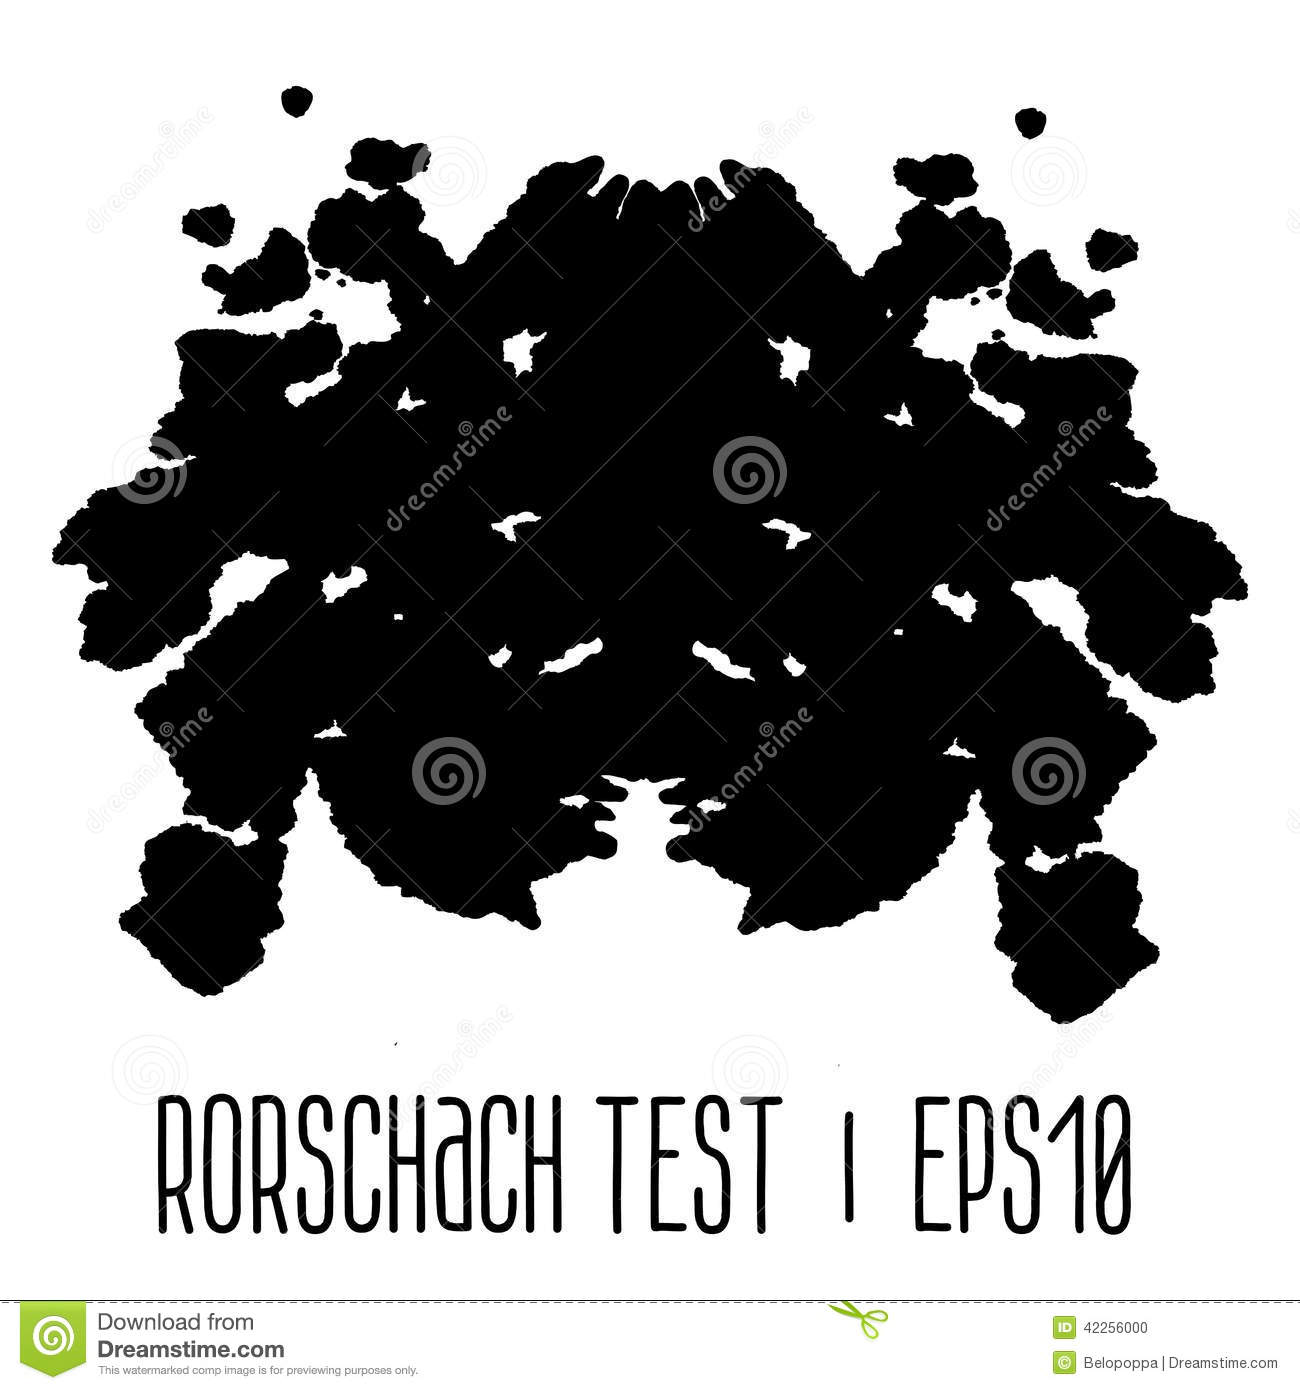 Rorschach Inkblot Test Illustration Stock Vector